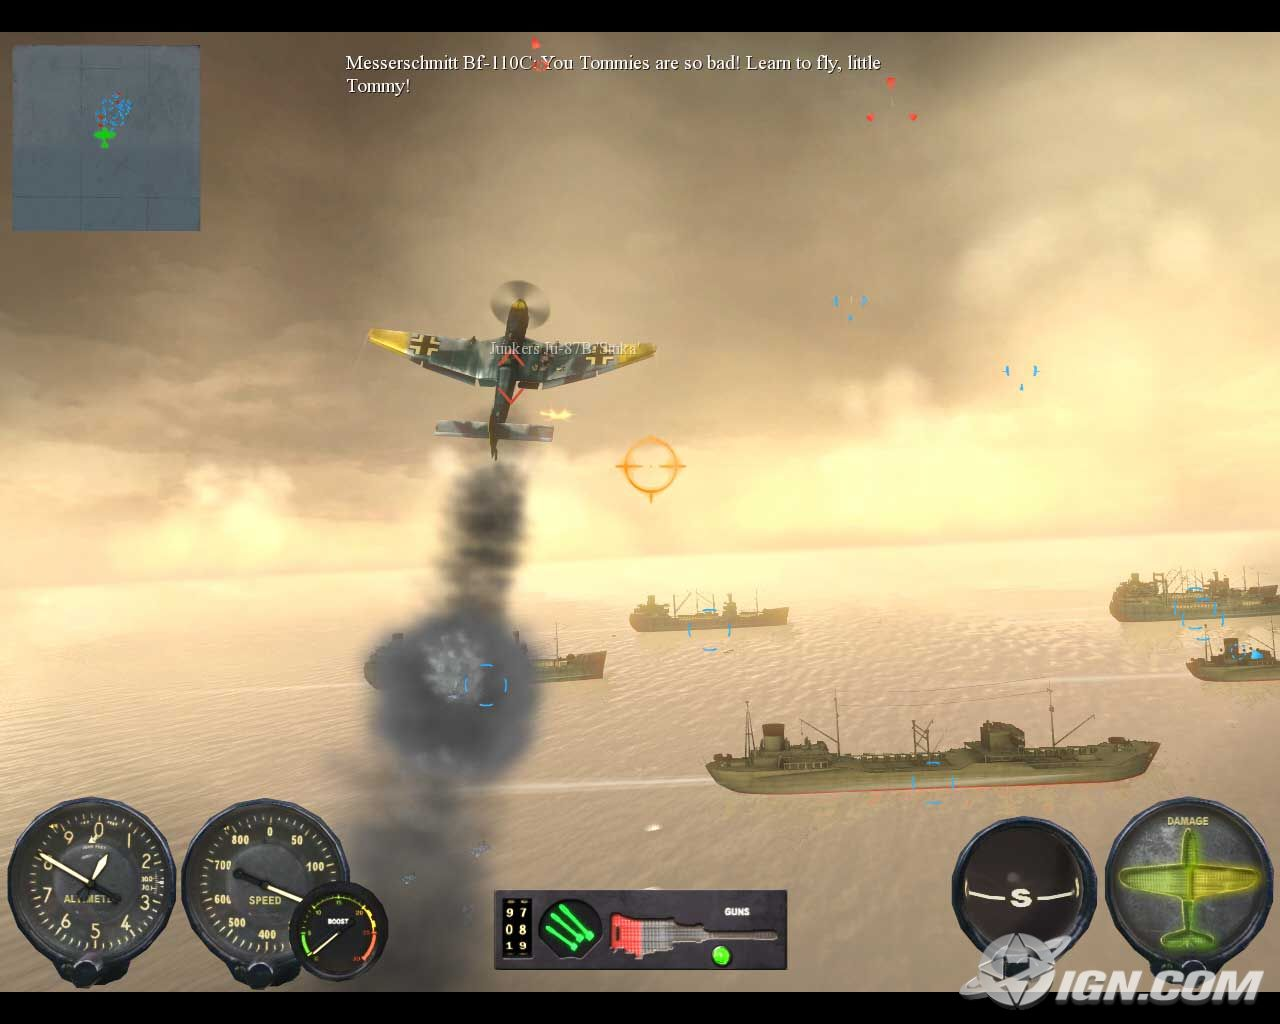 Combat wings battle of the pacific gow http twilighttorrents.net seedboxes